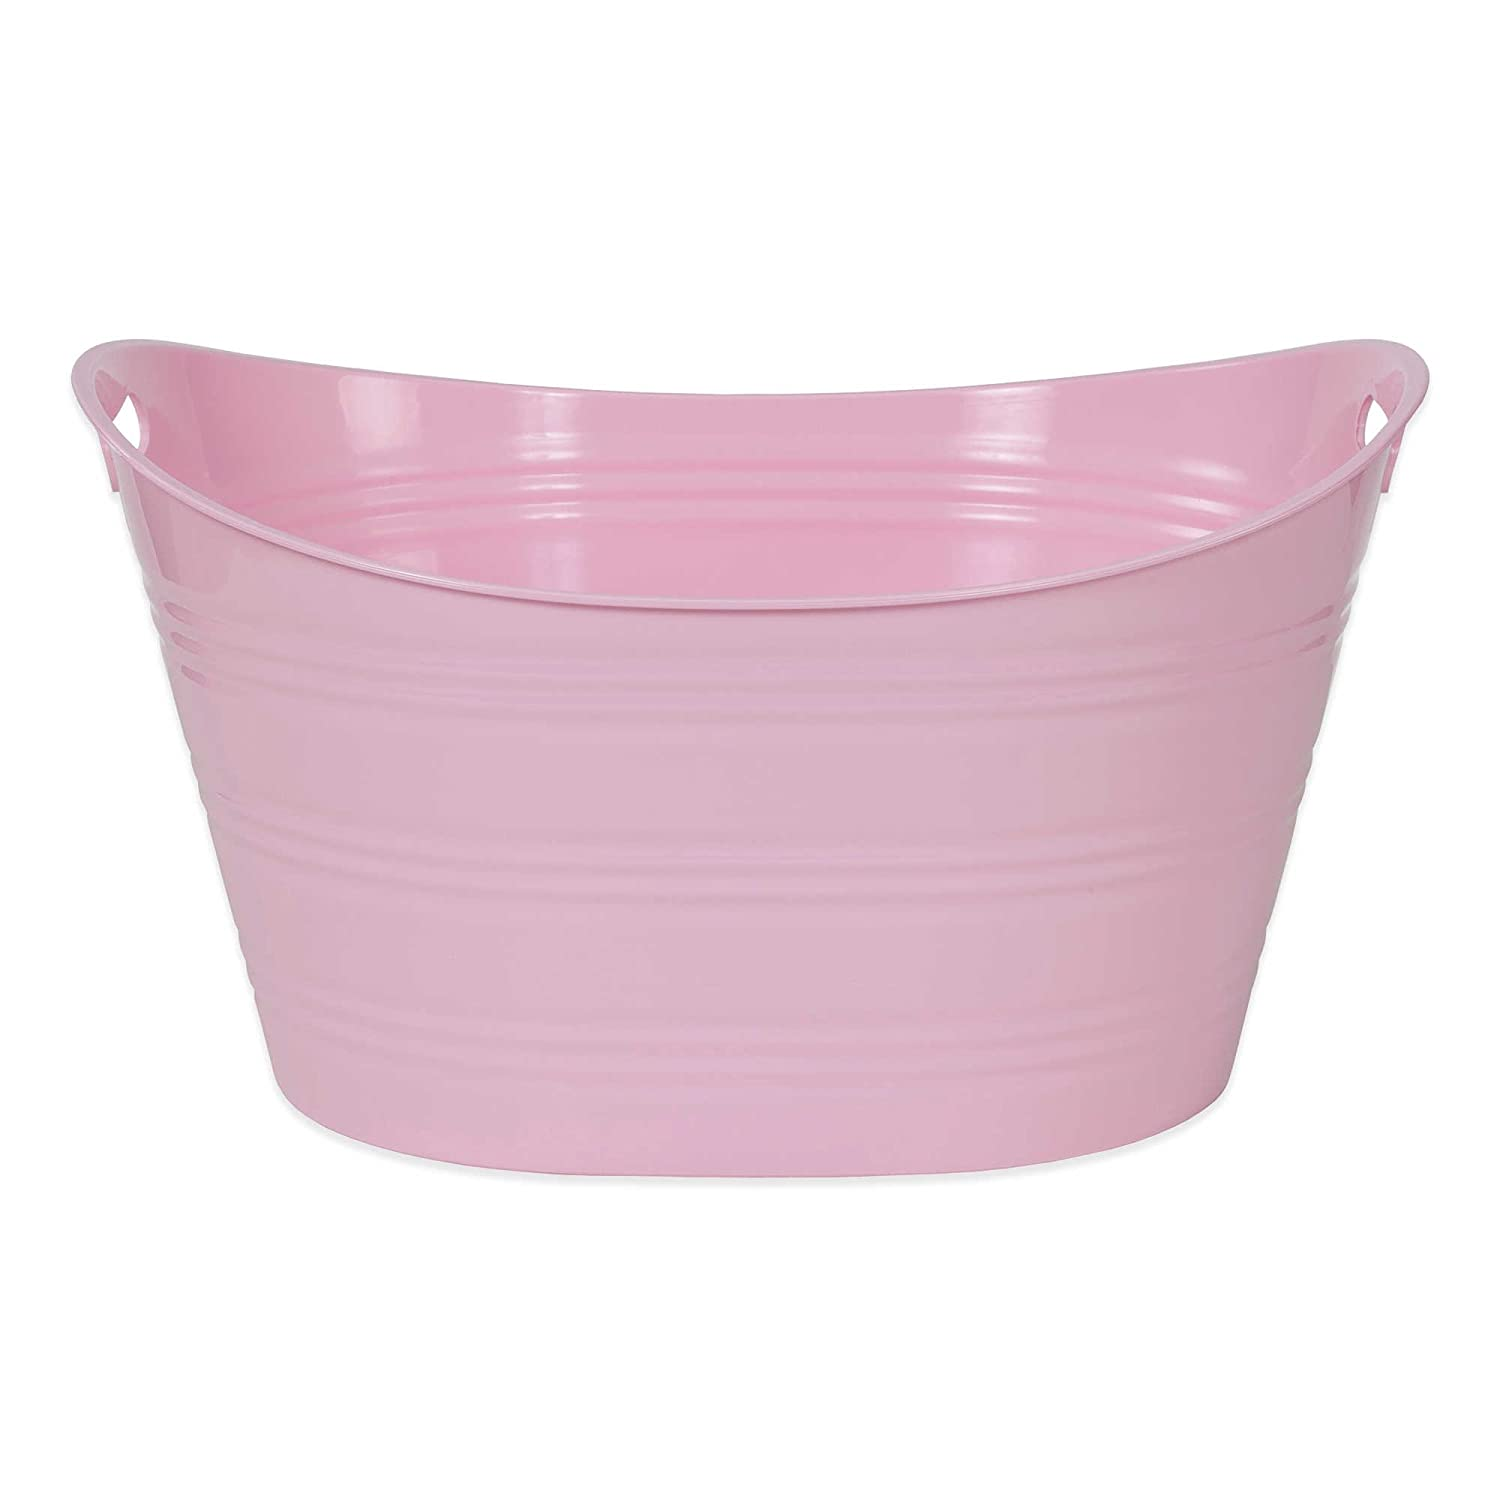 Creative Bath Storage Tub (Light Pink)